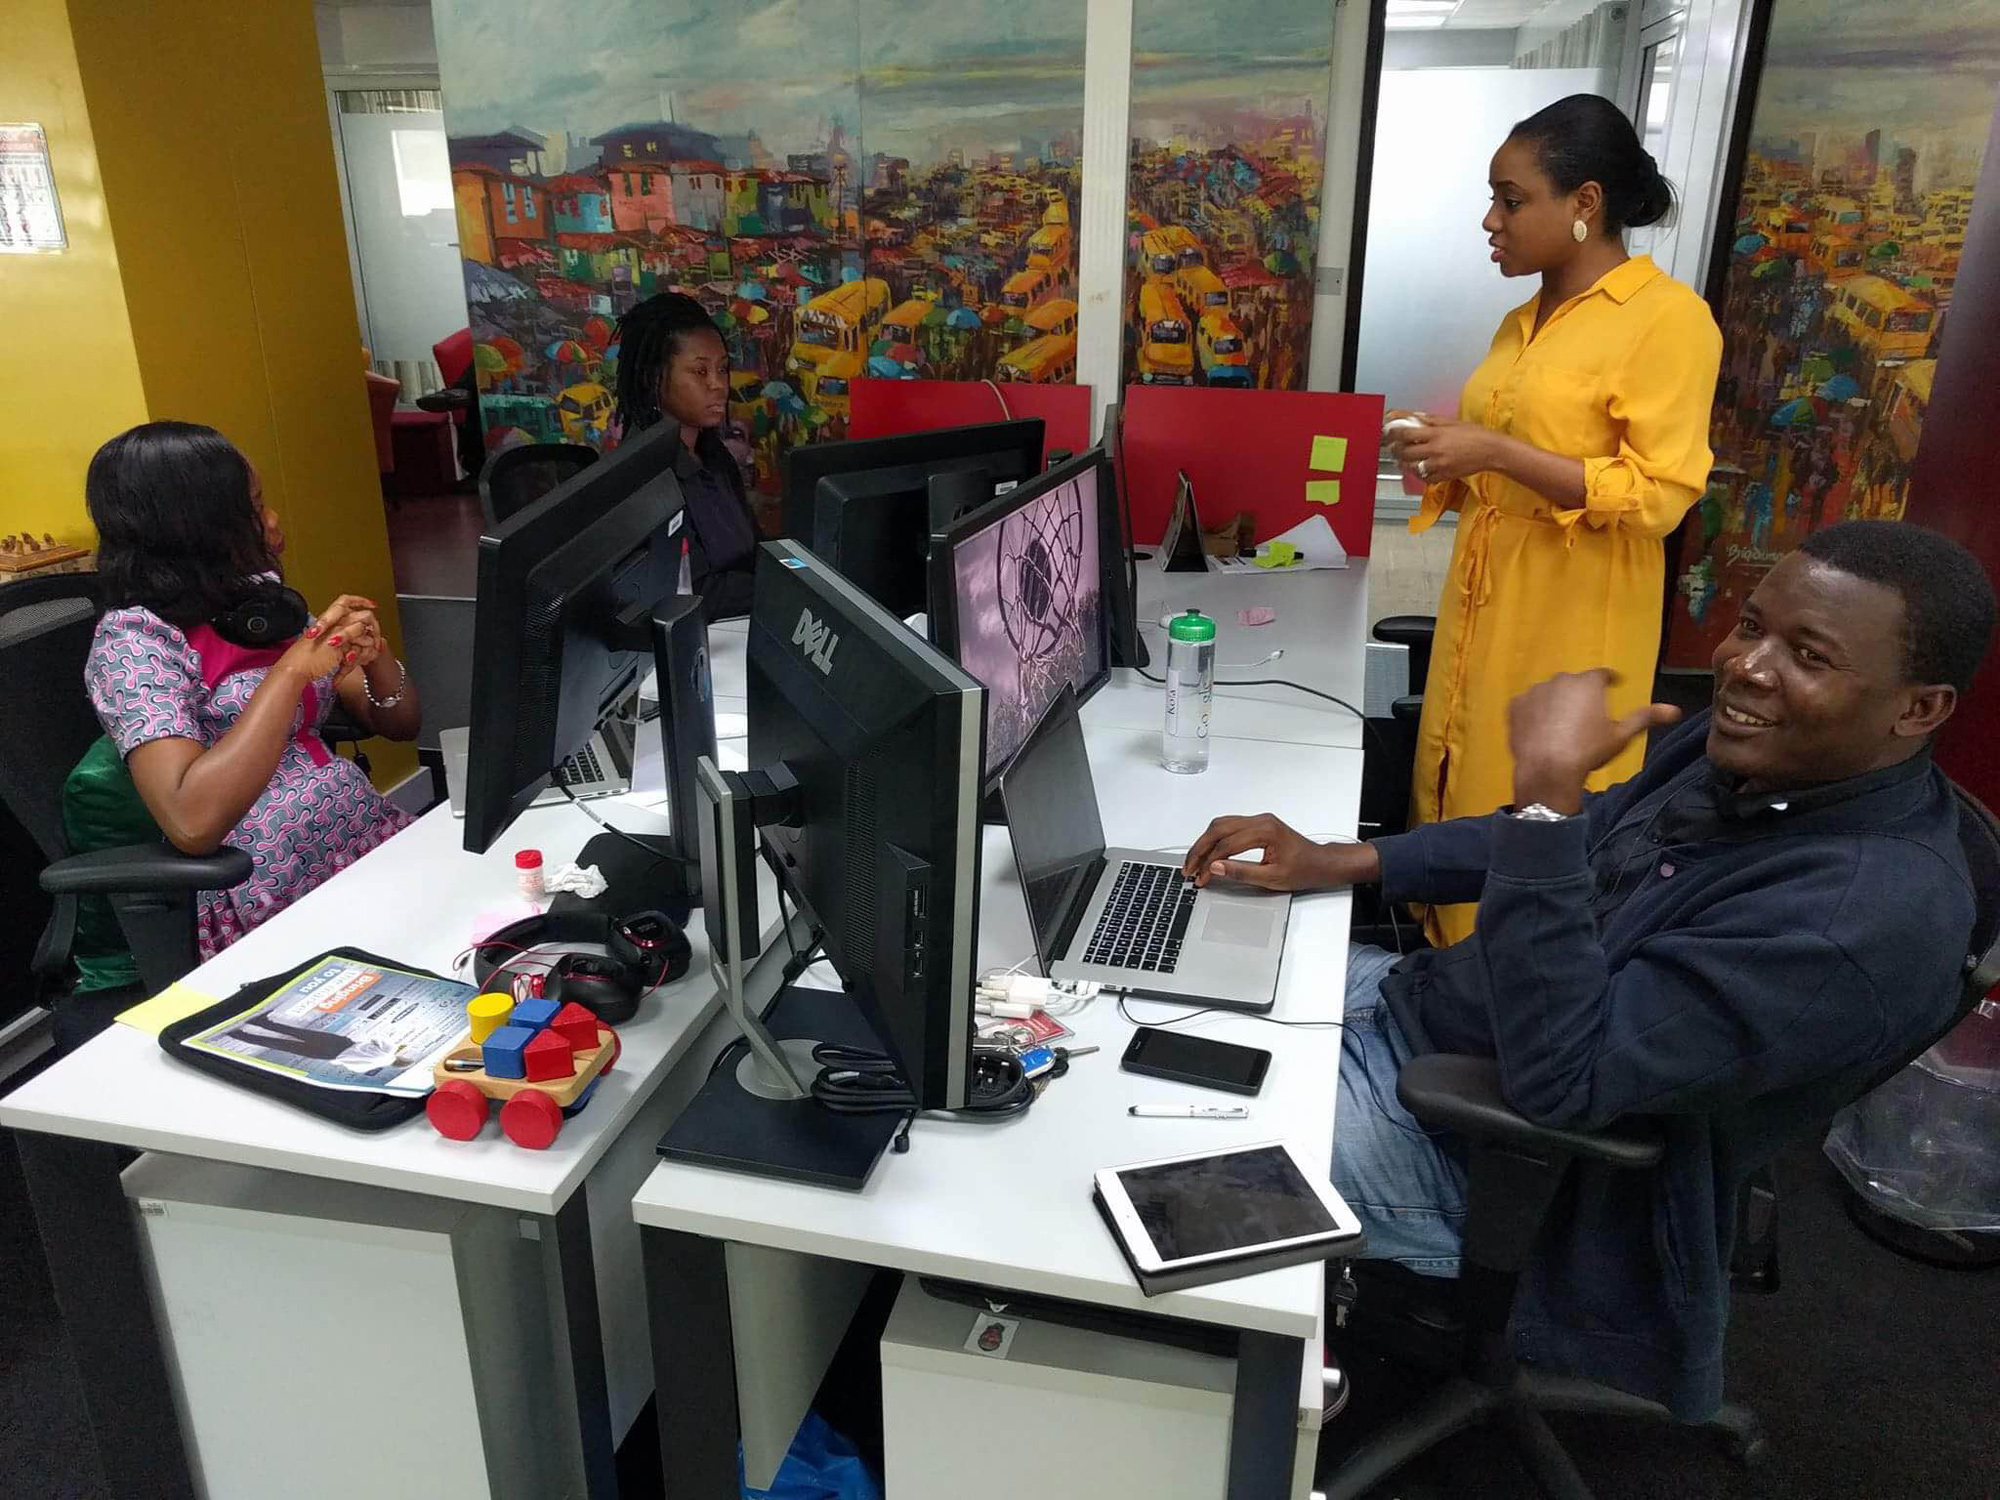 At the office of Google Nigeria, where Kọ́lá Túbọ̀sún worked as a Speech Linguistics Project Manager. ©Kọ́lá Túbọ̀sún